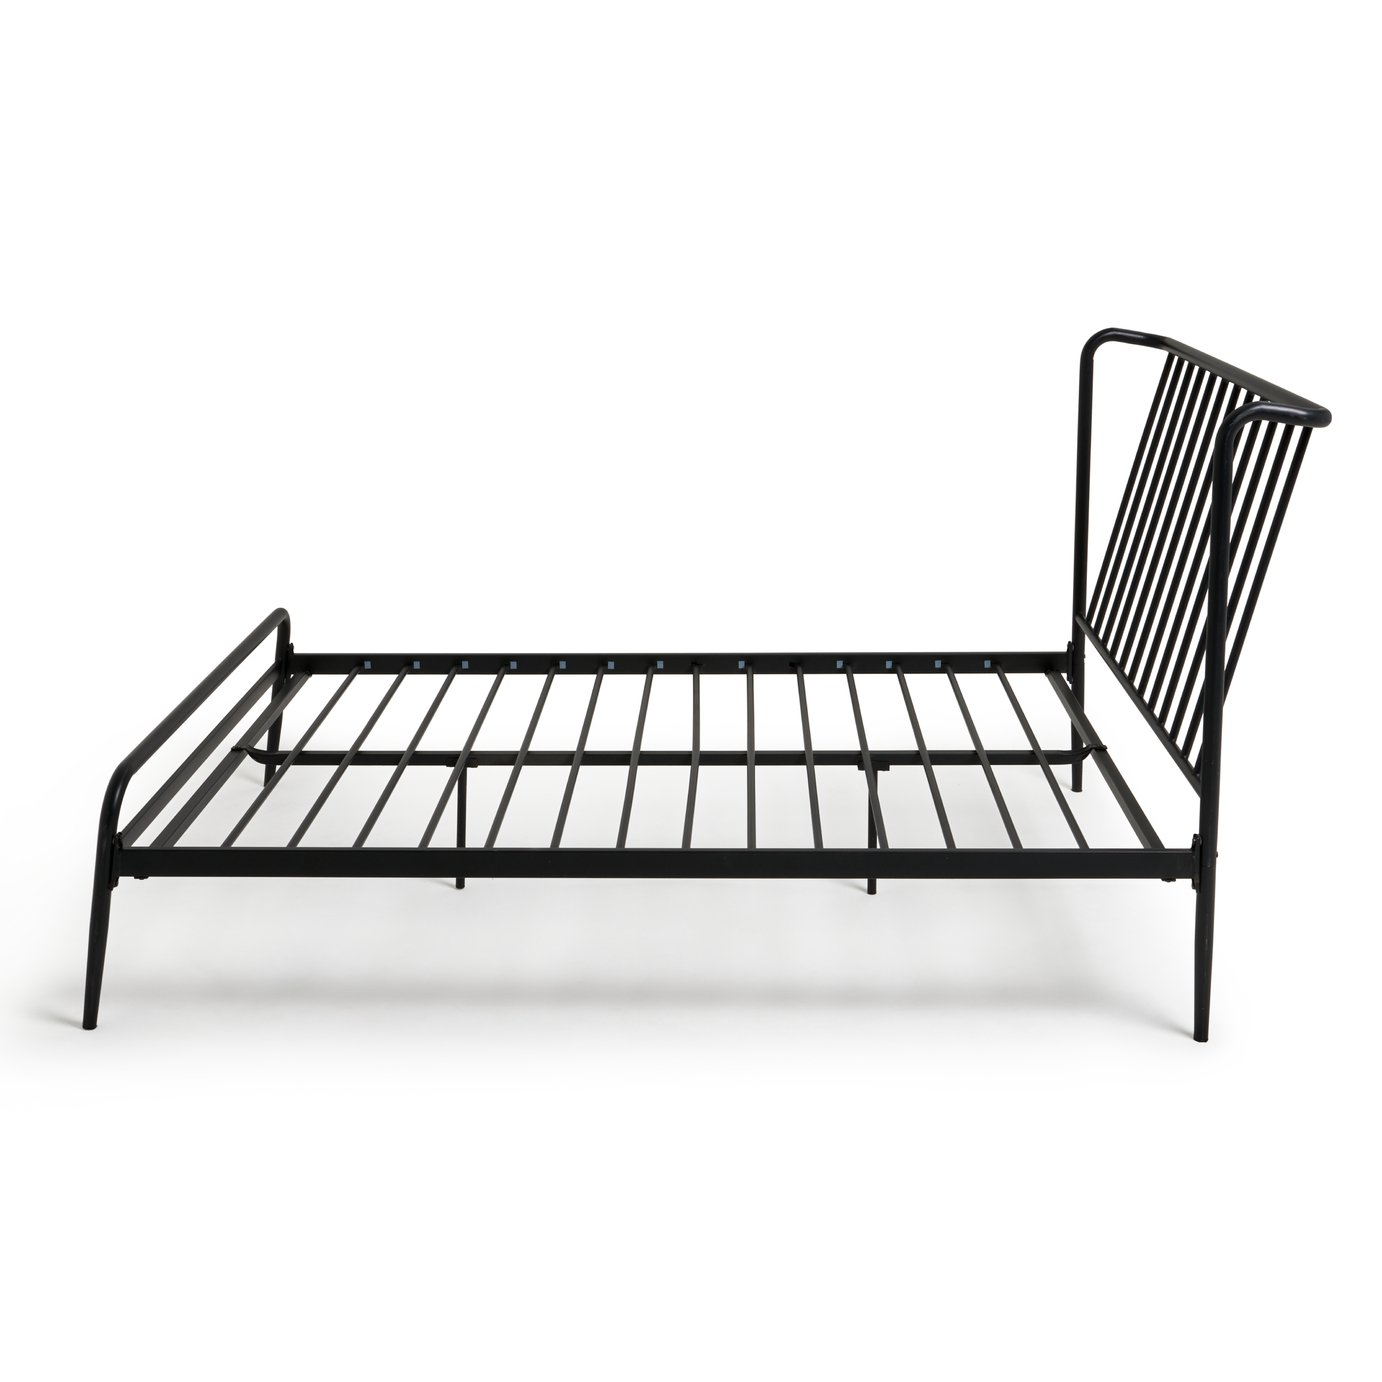 Argos Home Kanso Double Bed Frame - Black